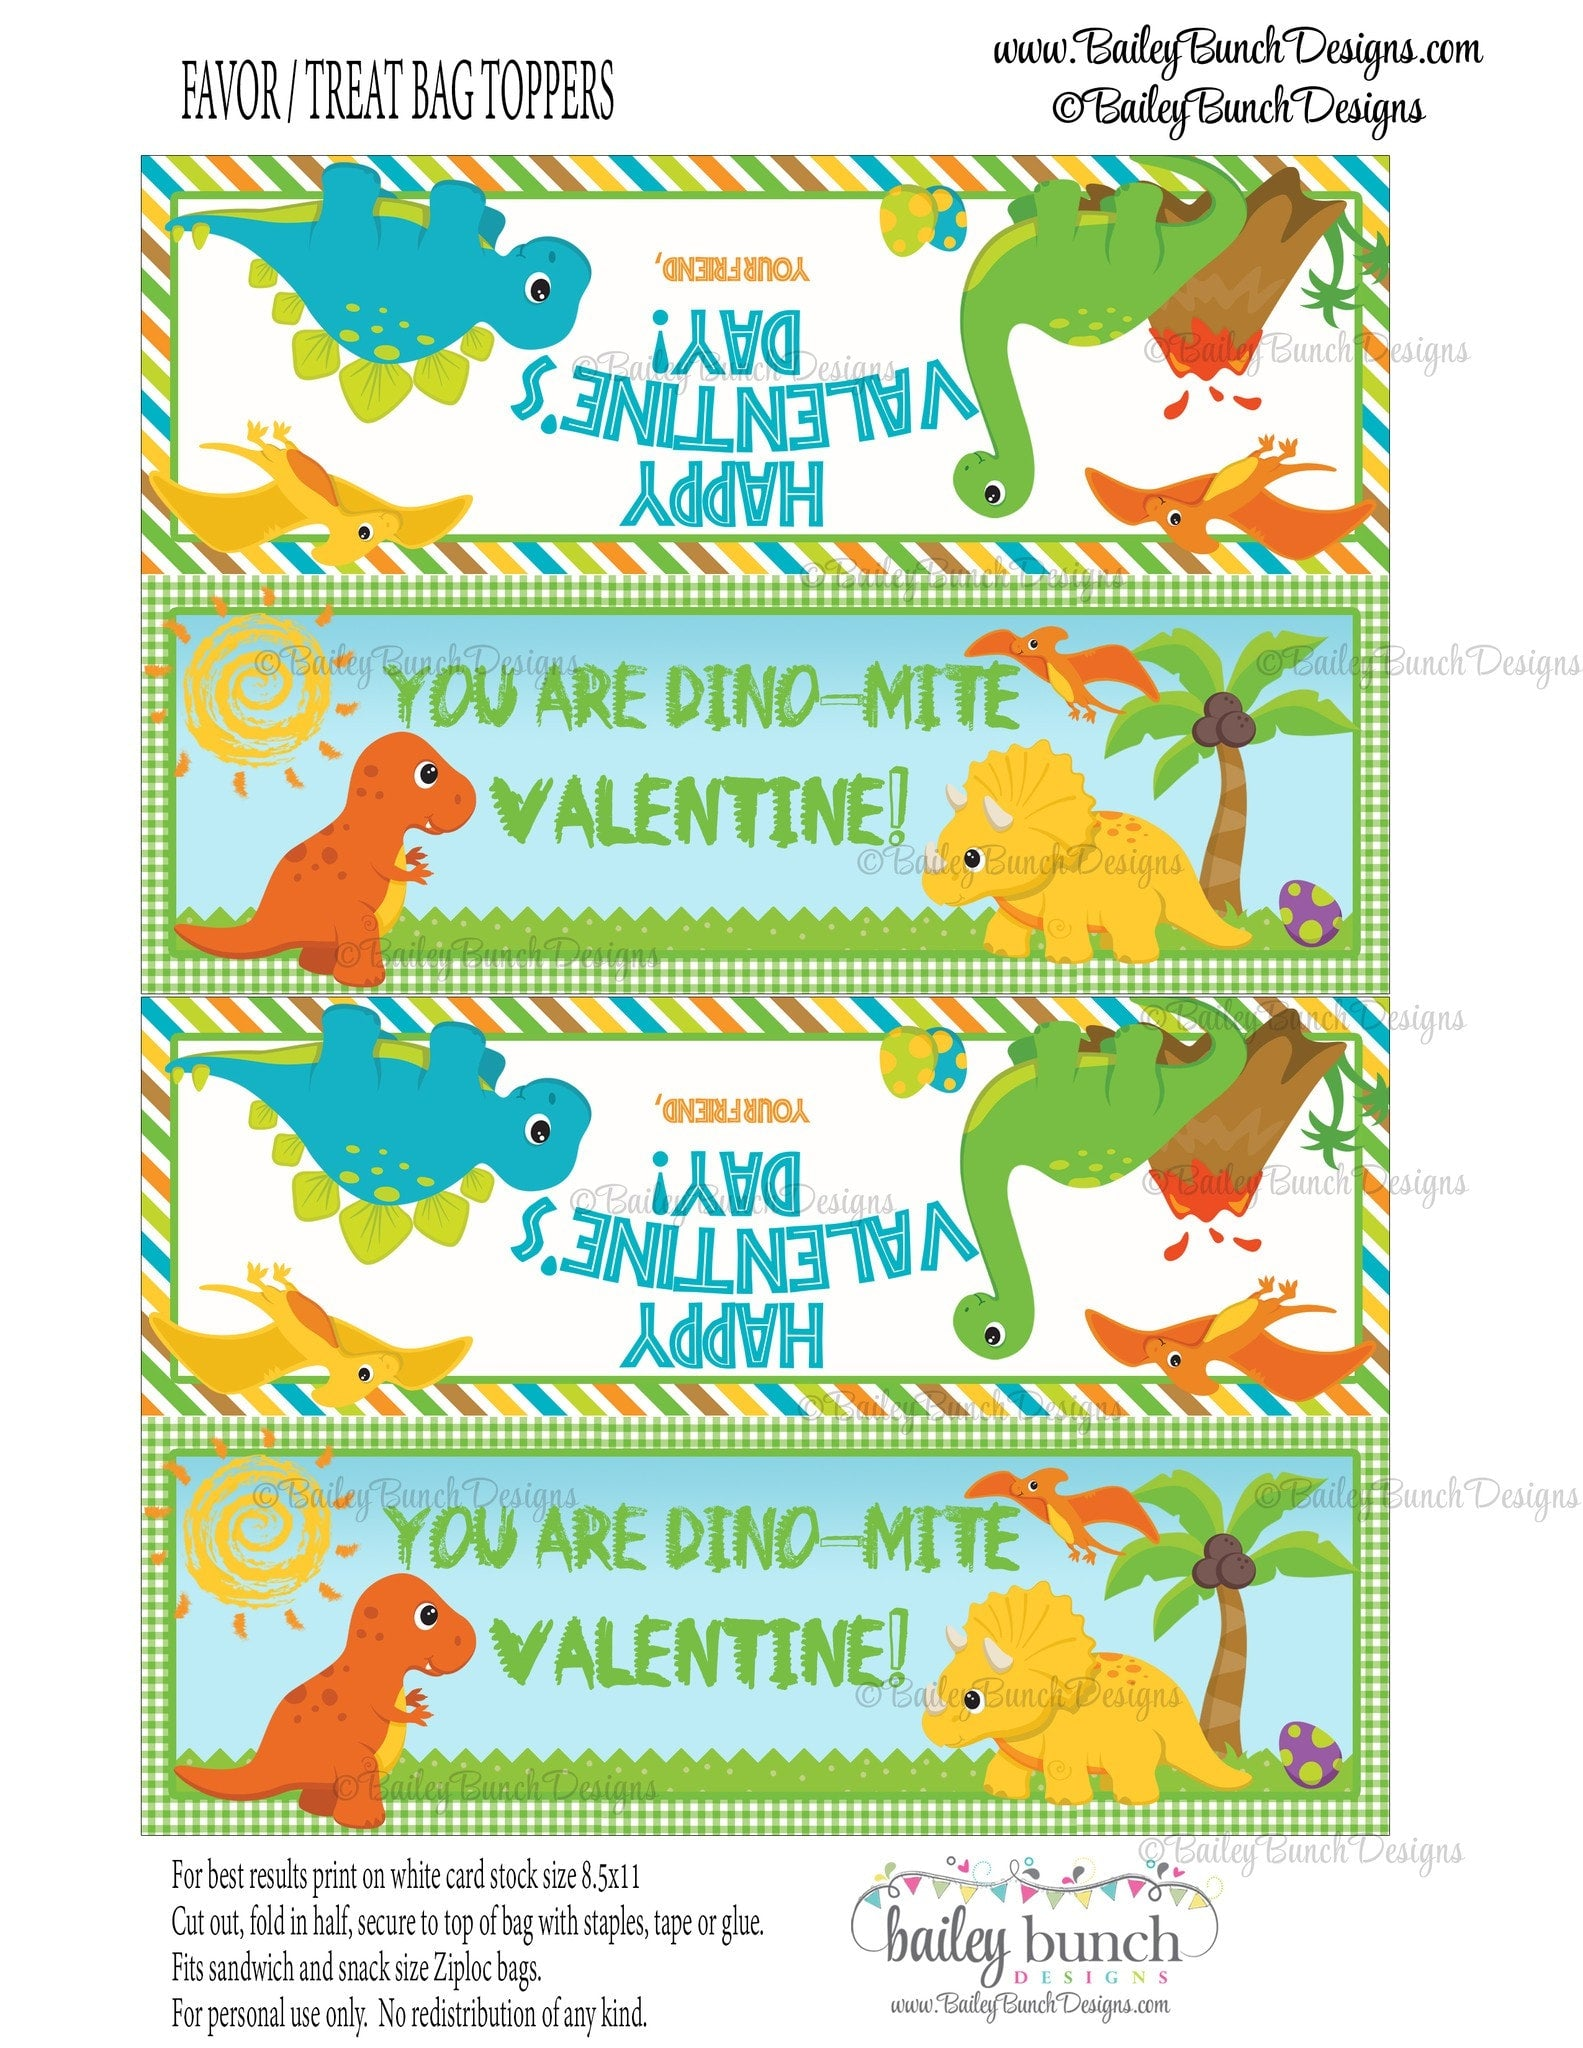 You are Dino-Mite Dinosaur Treat Bag Toppers, Valentines ...